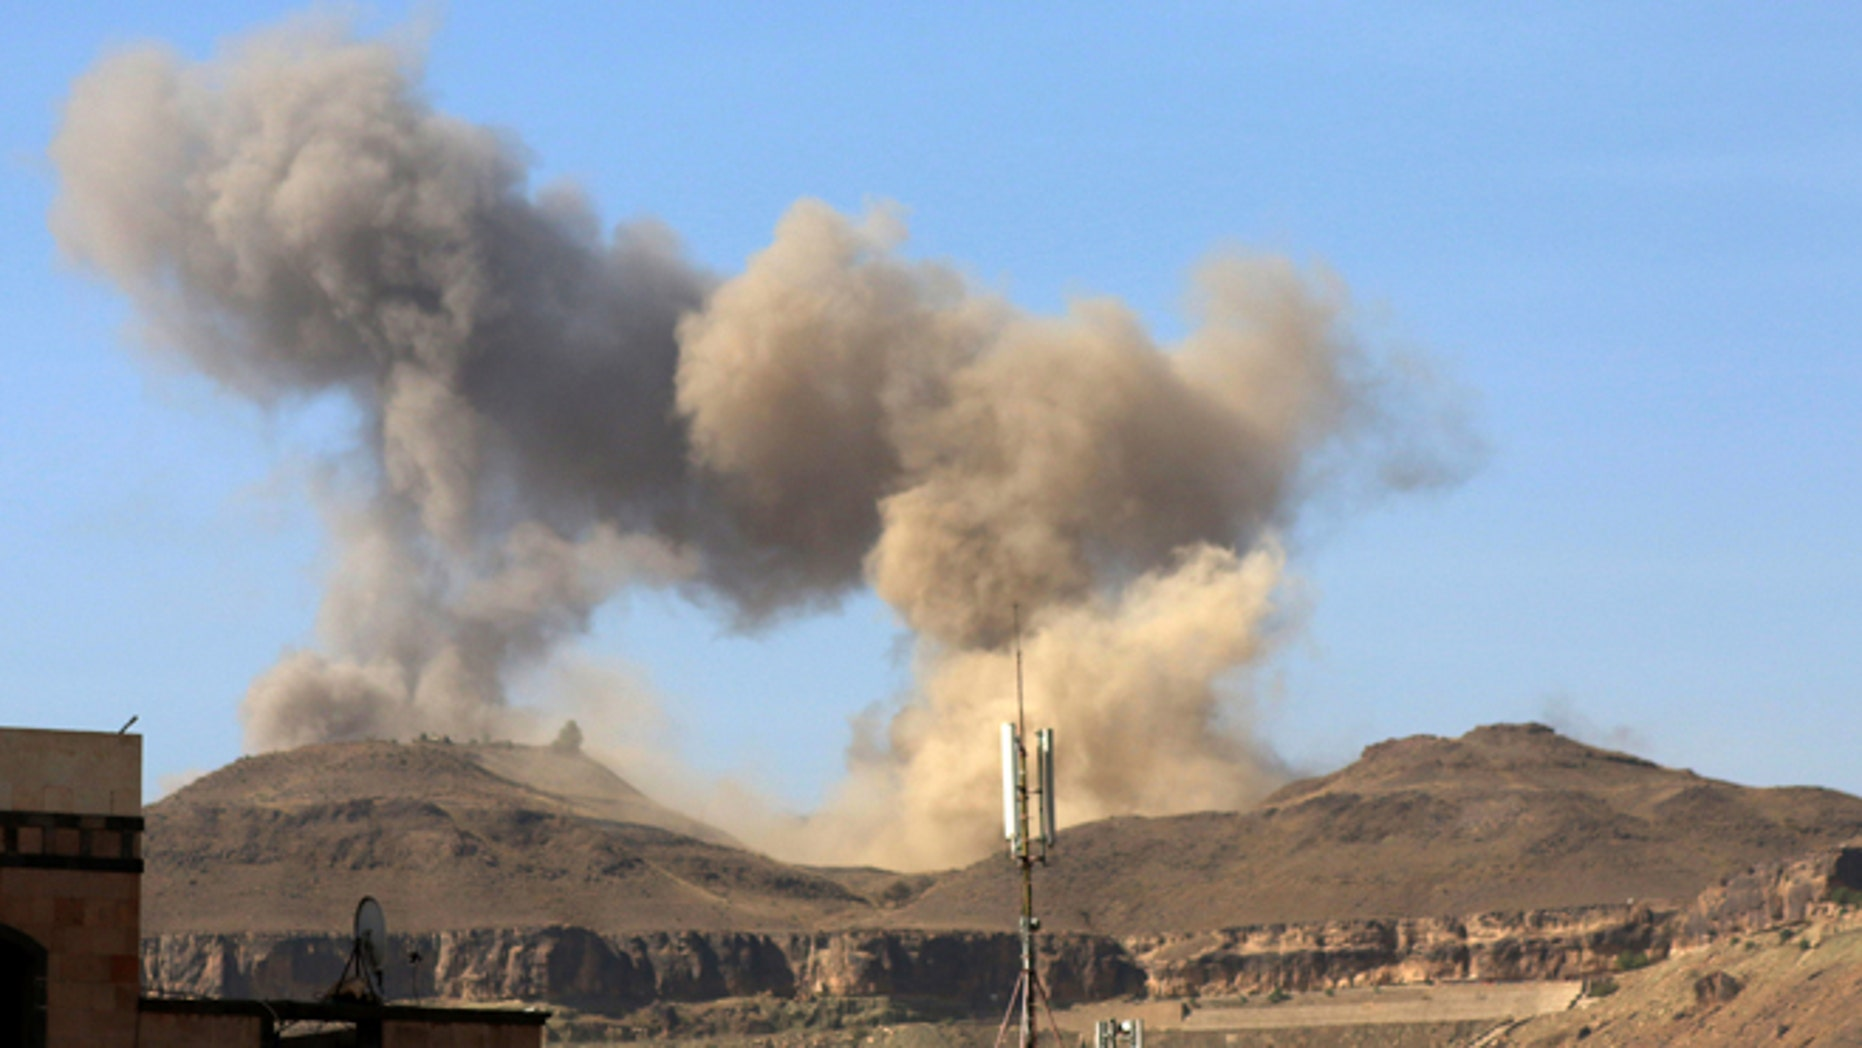 April 17, 2015: Smoke rises after a Saudi-led airstrike on Sanaa, Yemen.